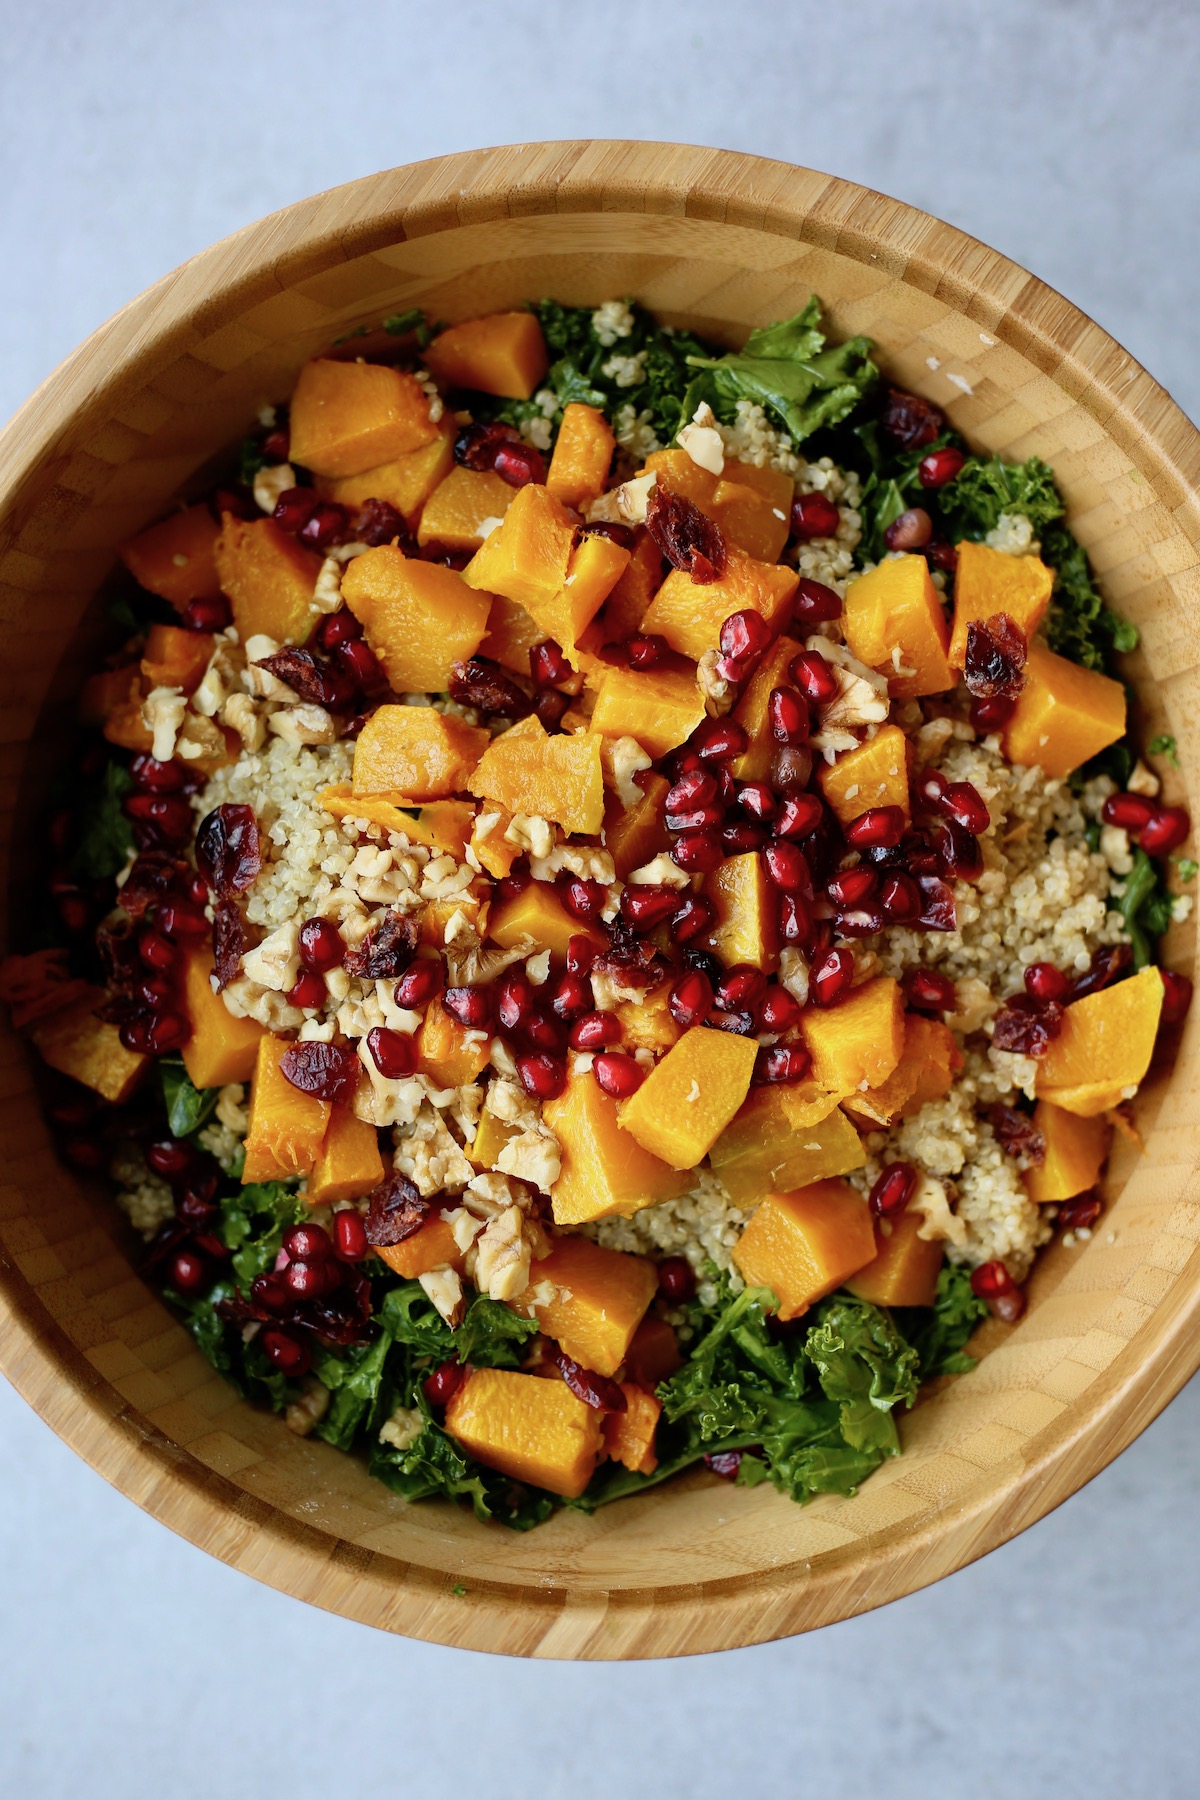 Massaged kale salad topped with quinoa, pomegranate arils, walnuts and roasted squash